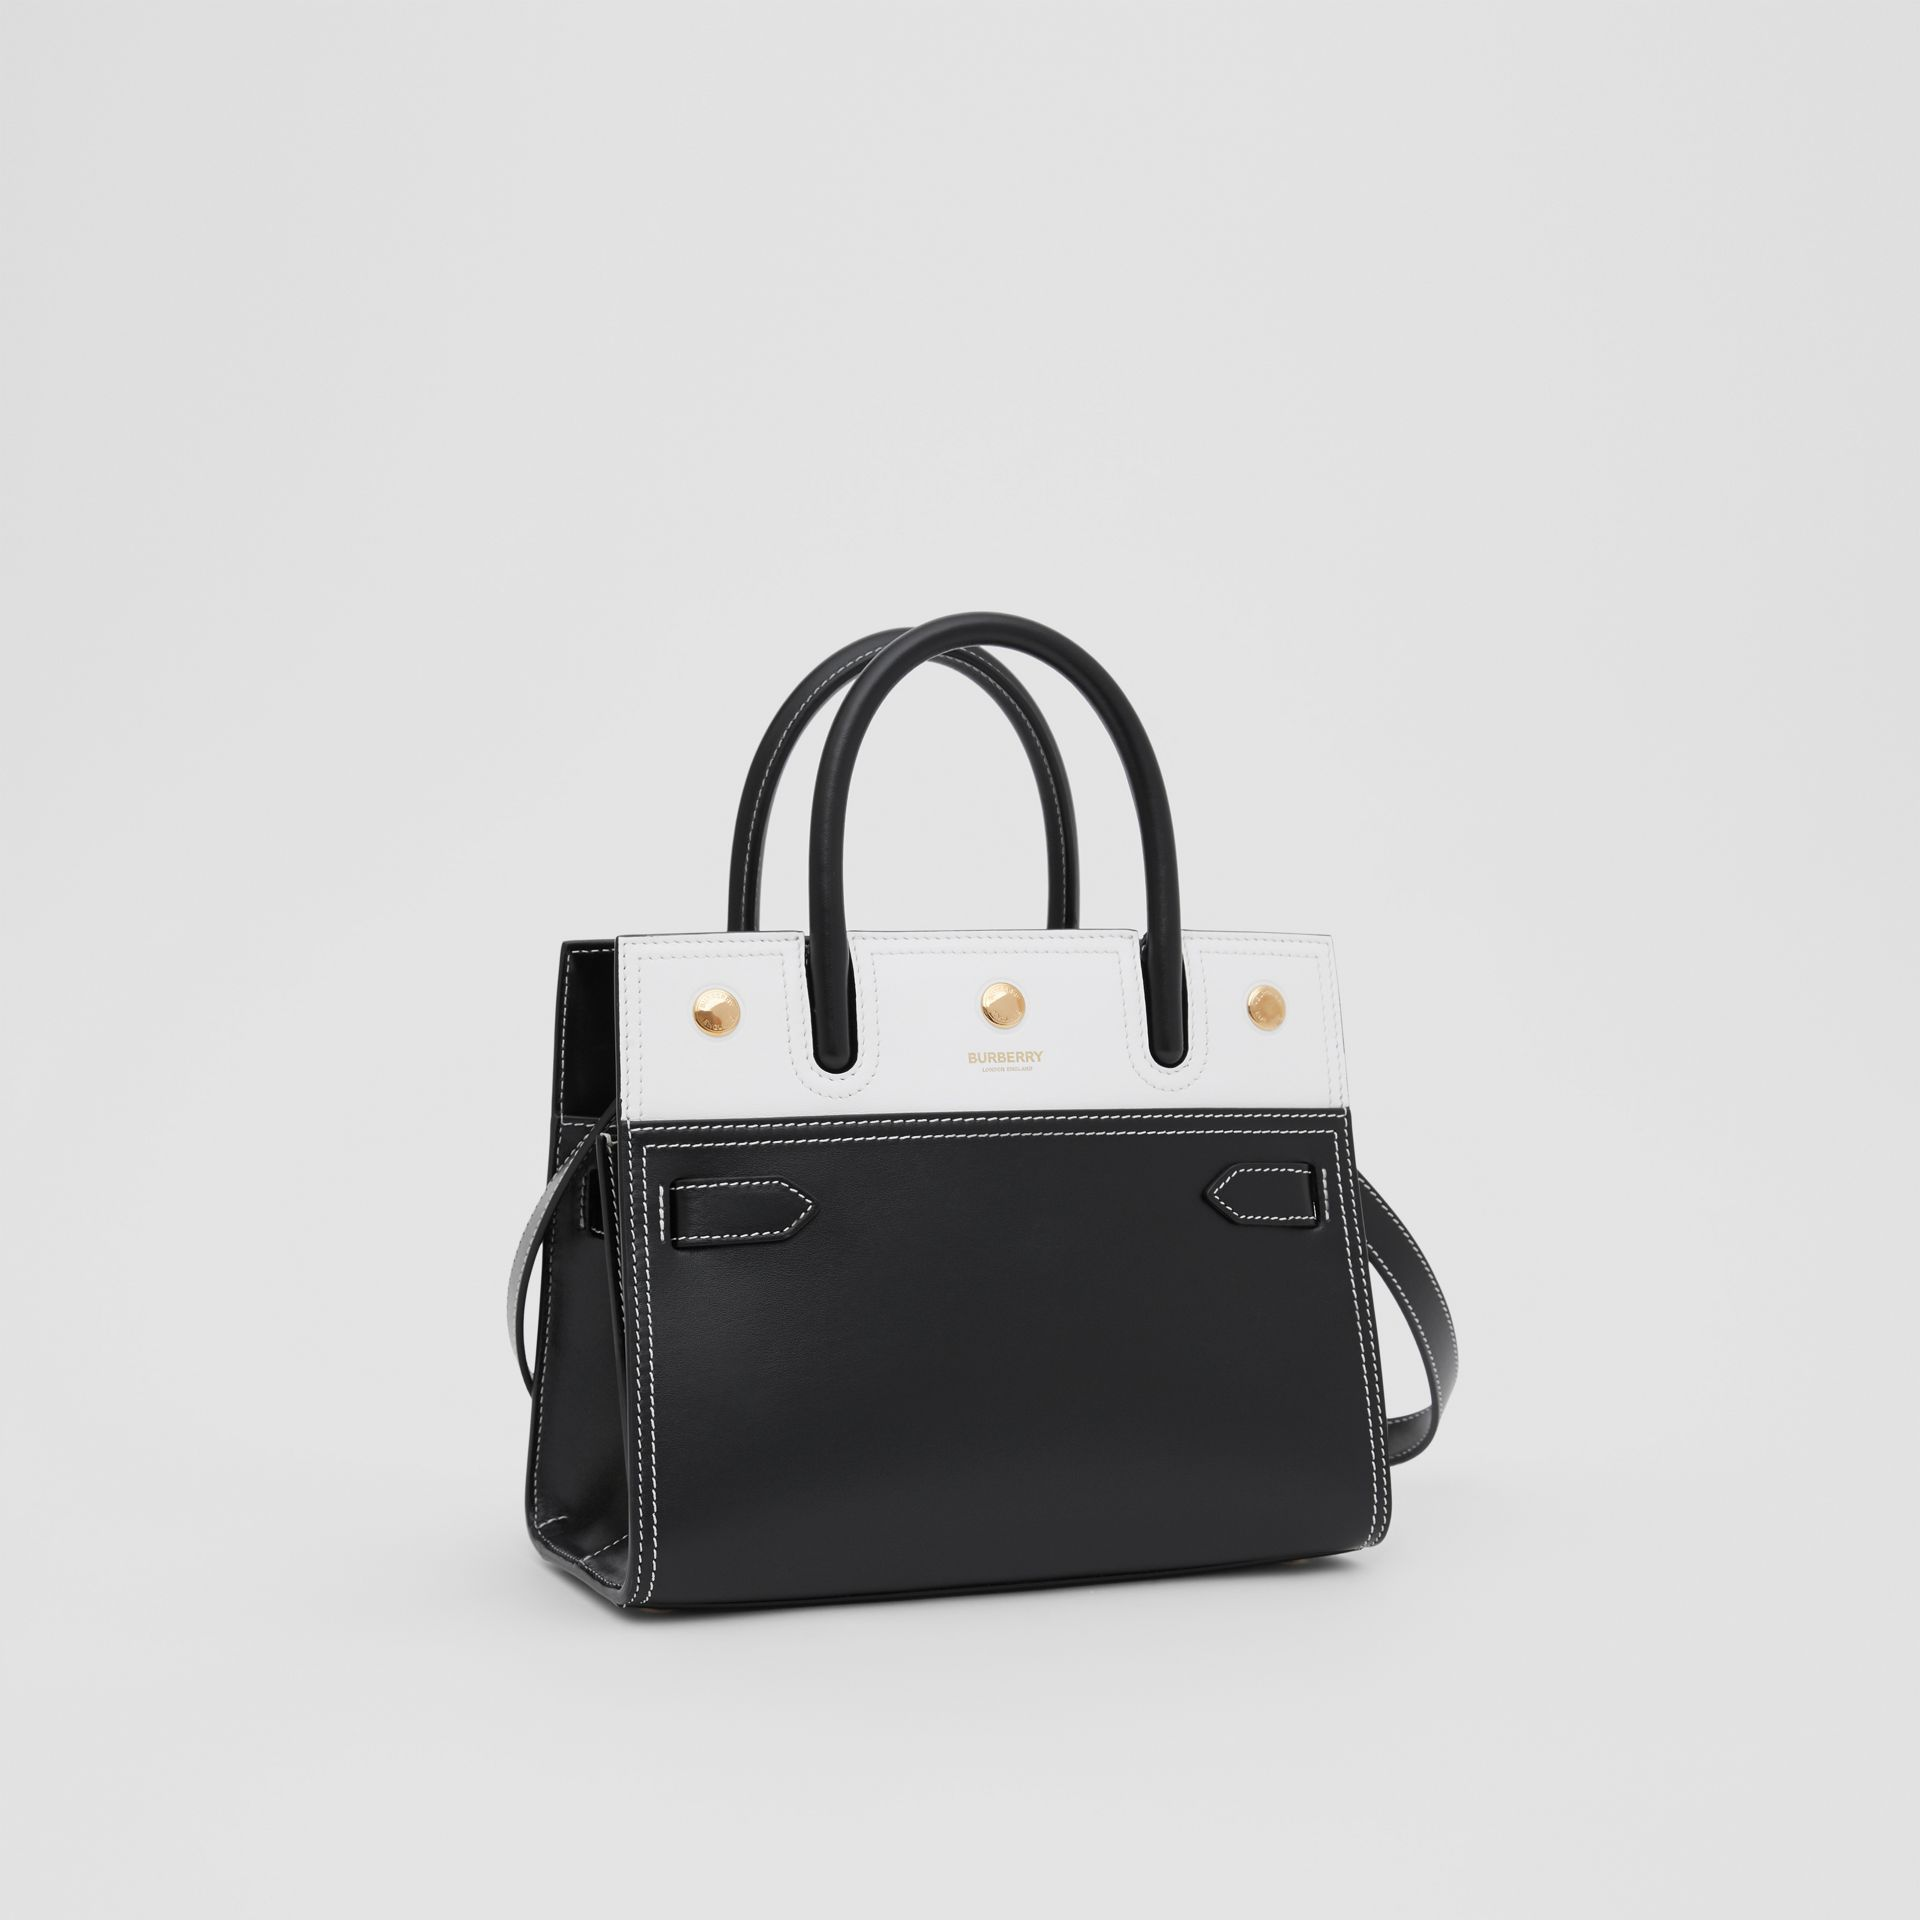 Mini Leather Two-handle Title Bag in Black/white - Women | Burberry - gallery image 4